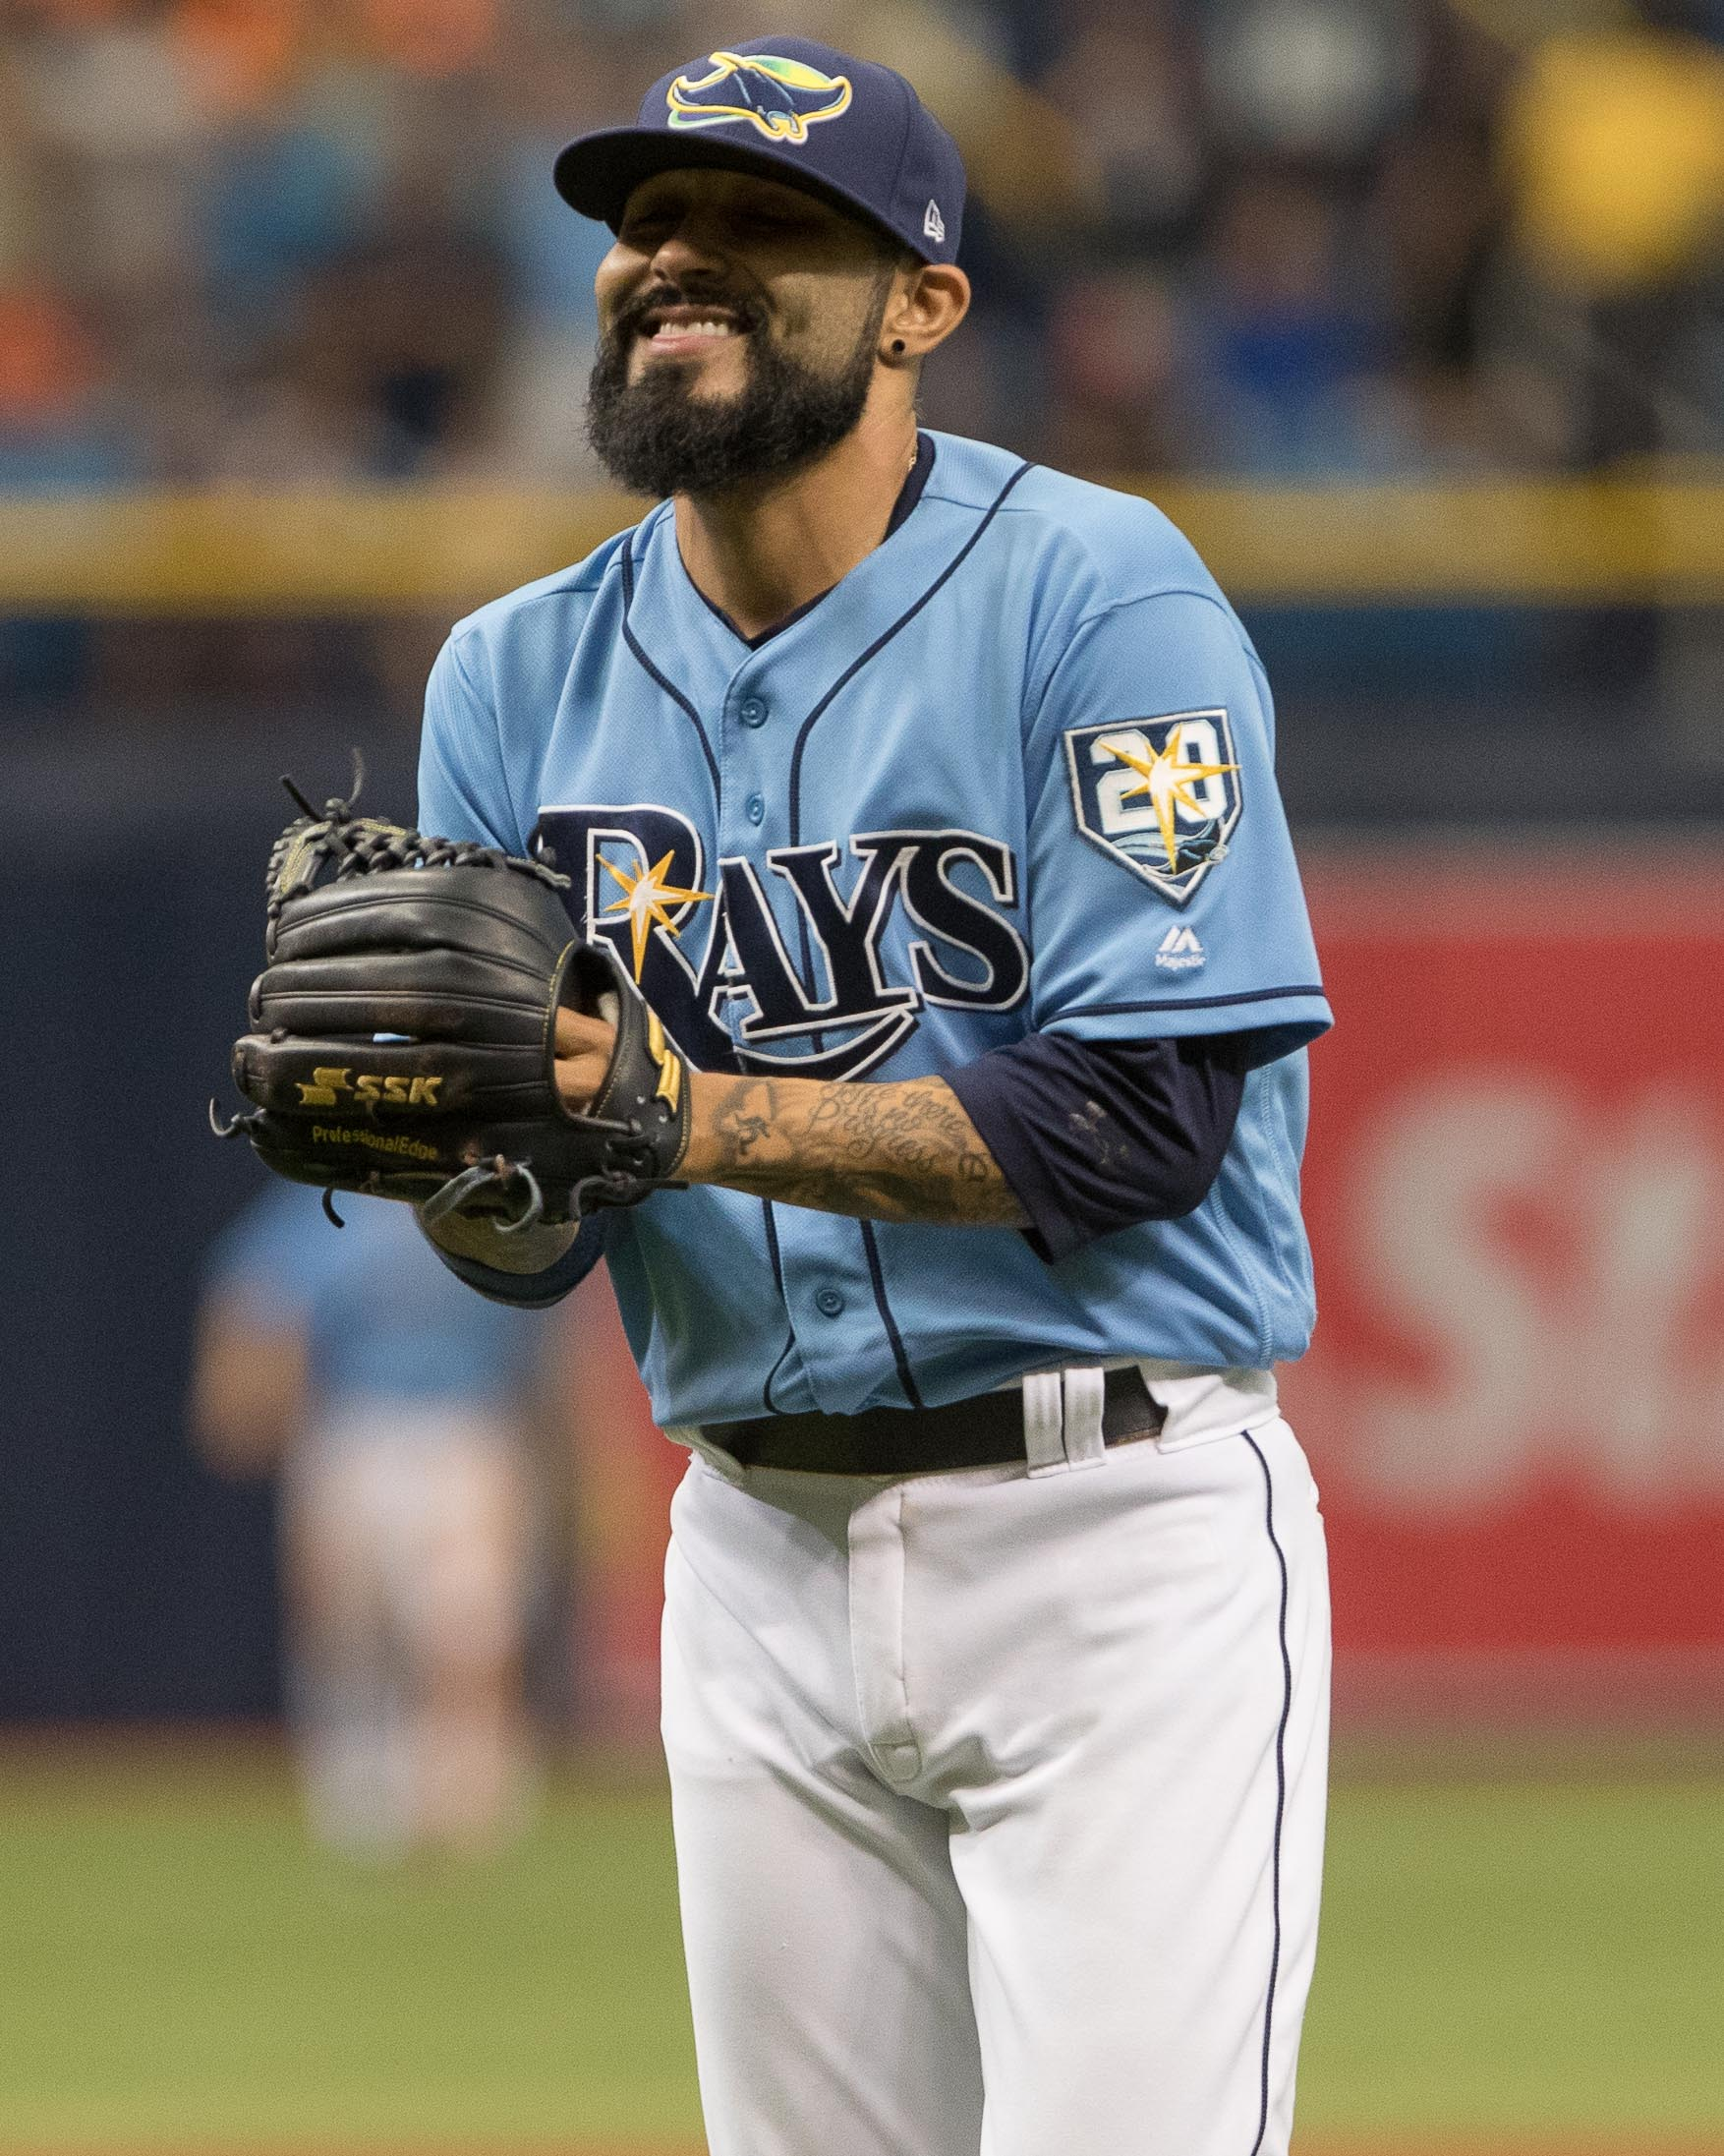 Romo smiles after getting his eighth save./STEVEN MUNCIE